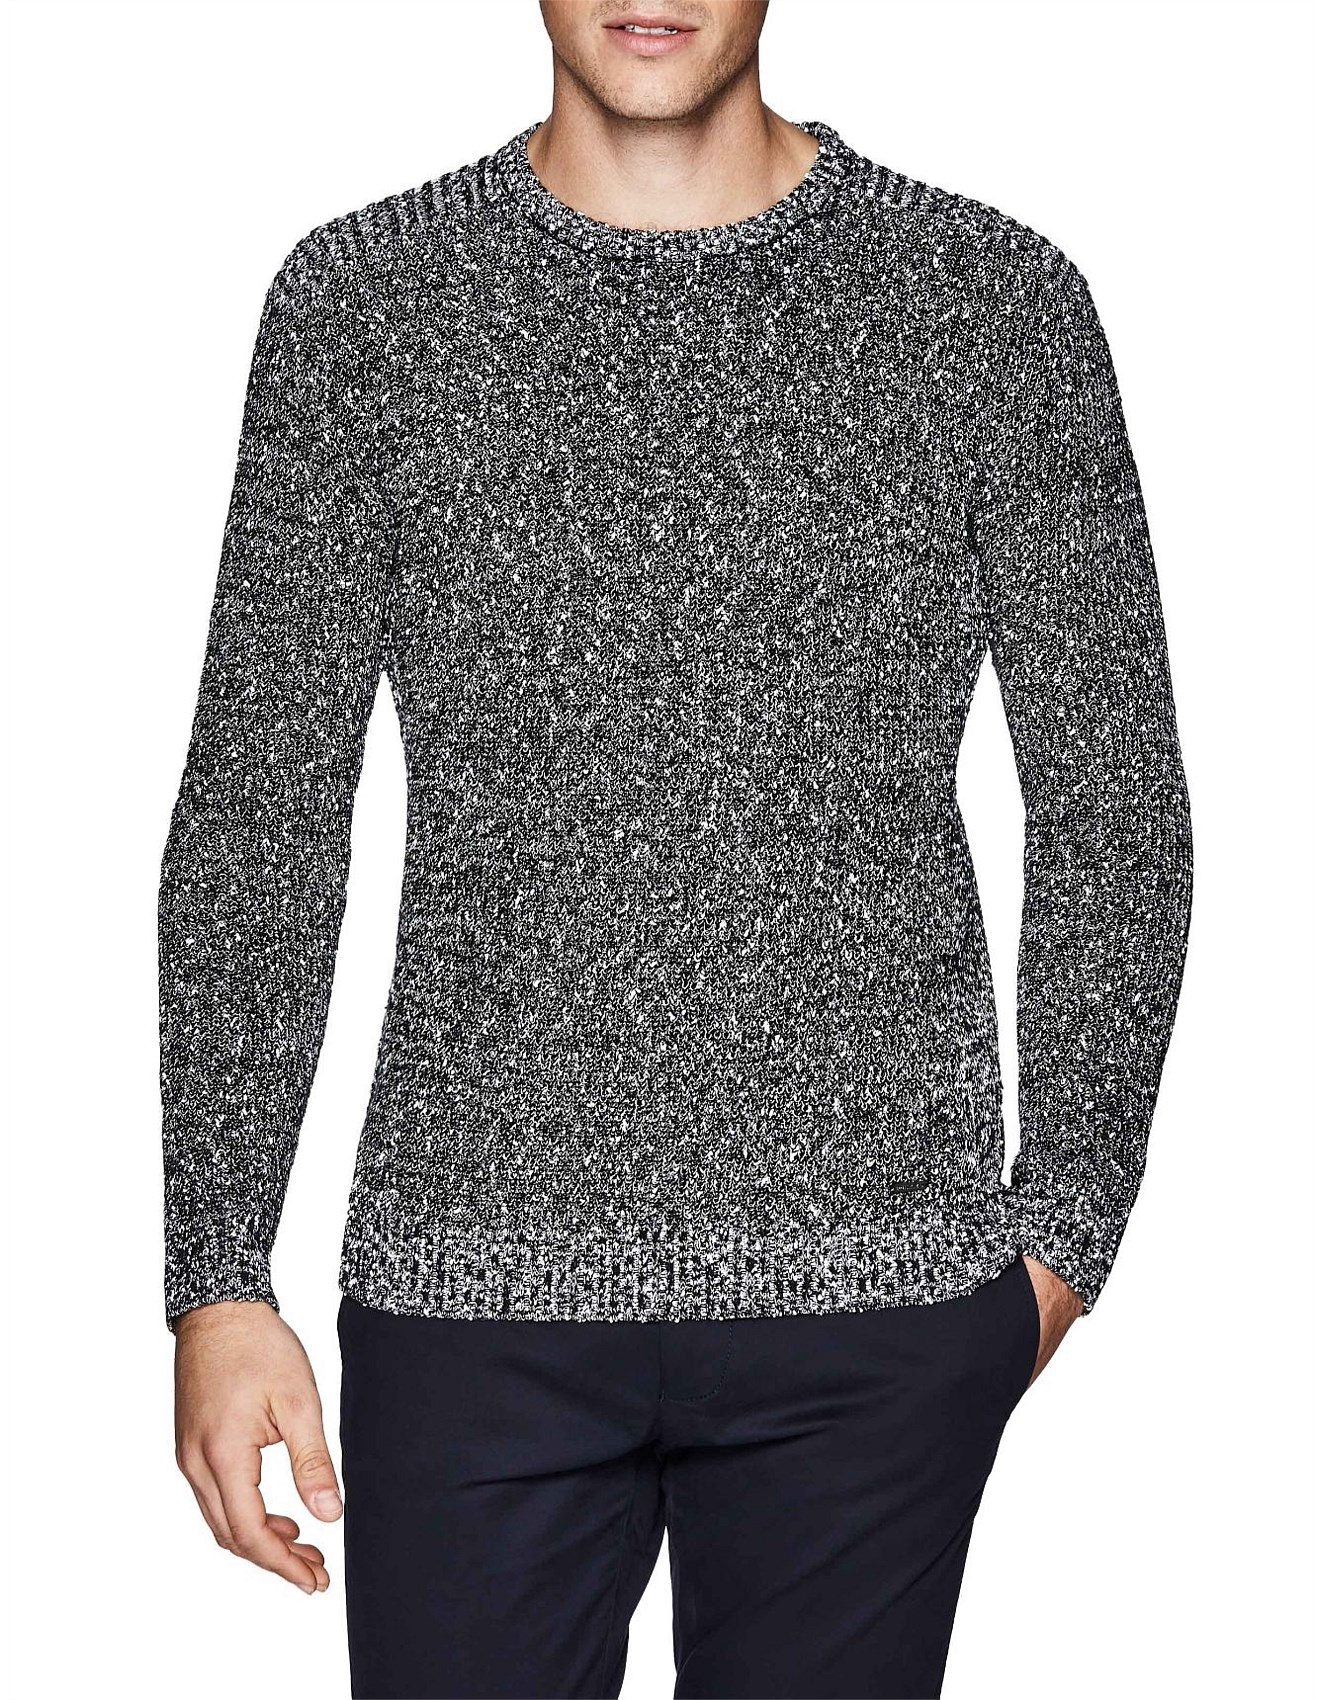 8bf73e313 Bretley Cotton Blend Crew Knit Jumper